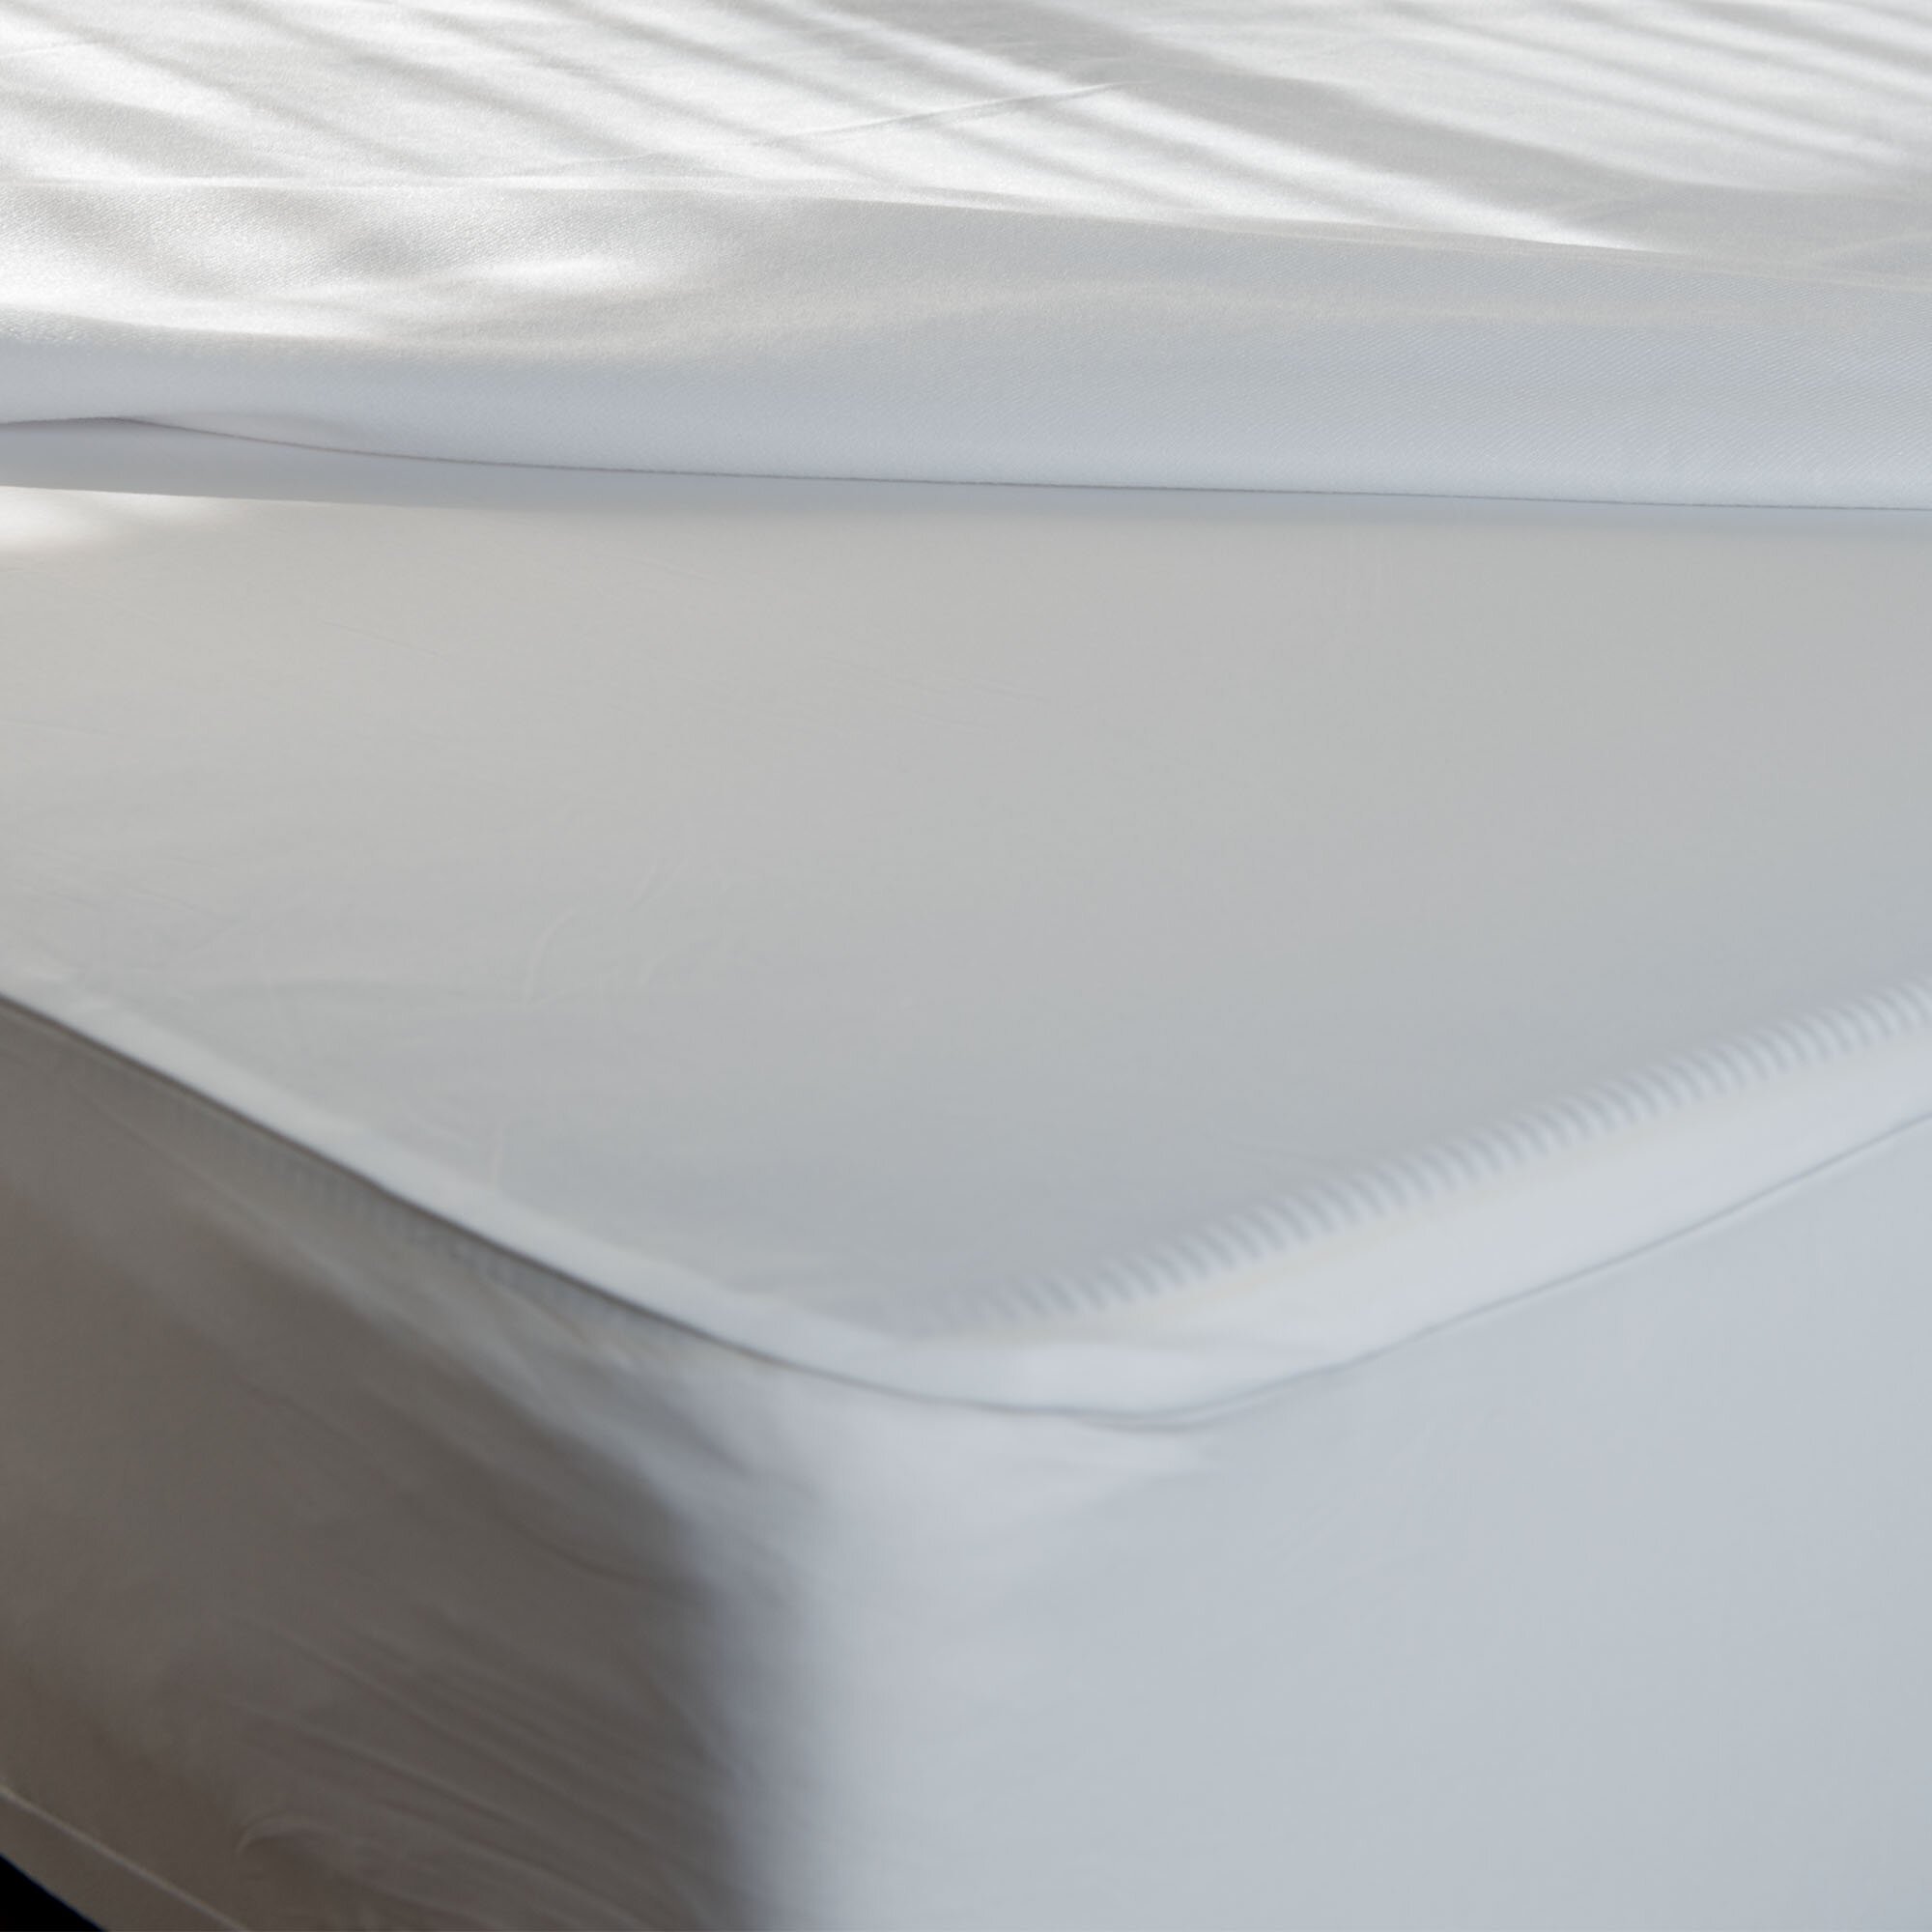 Cleanrest Fitted Hypoallergenic Waterproof Mattress Cover Wayfair